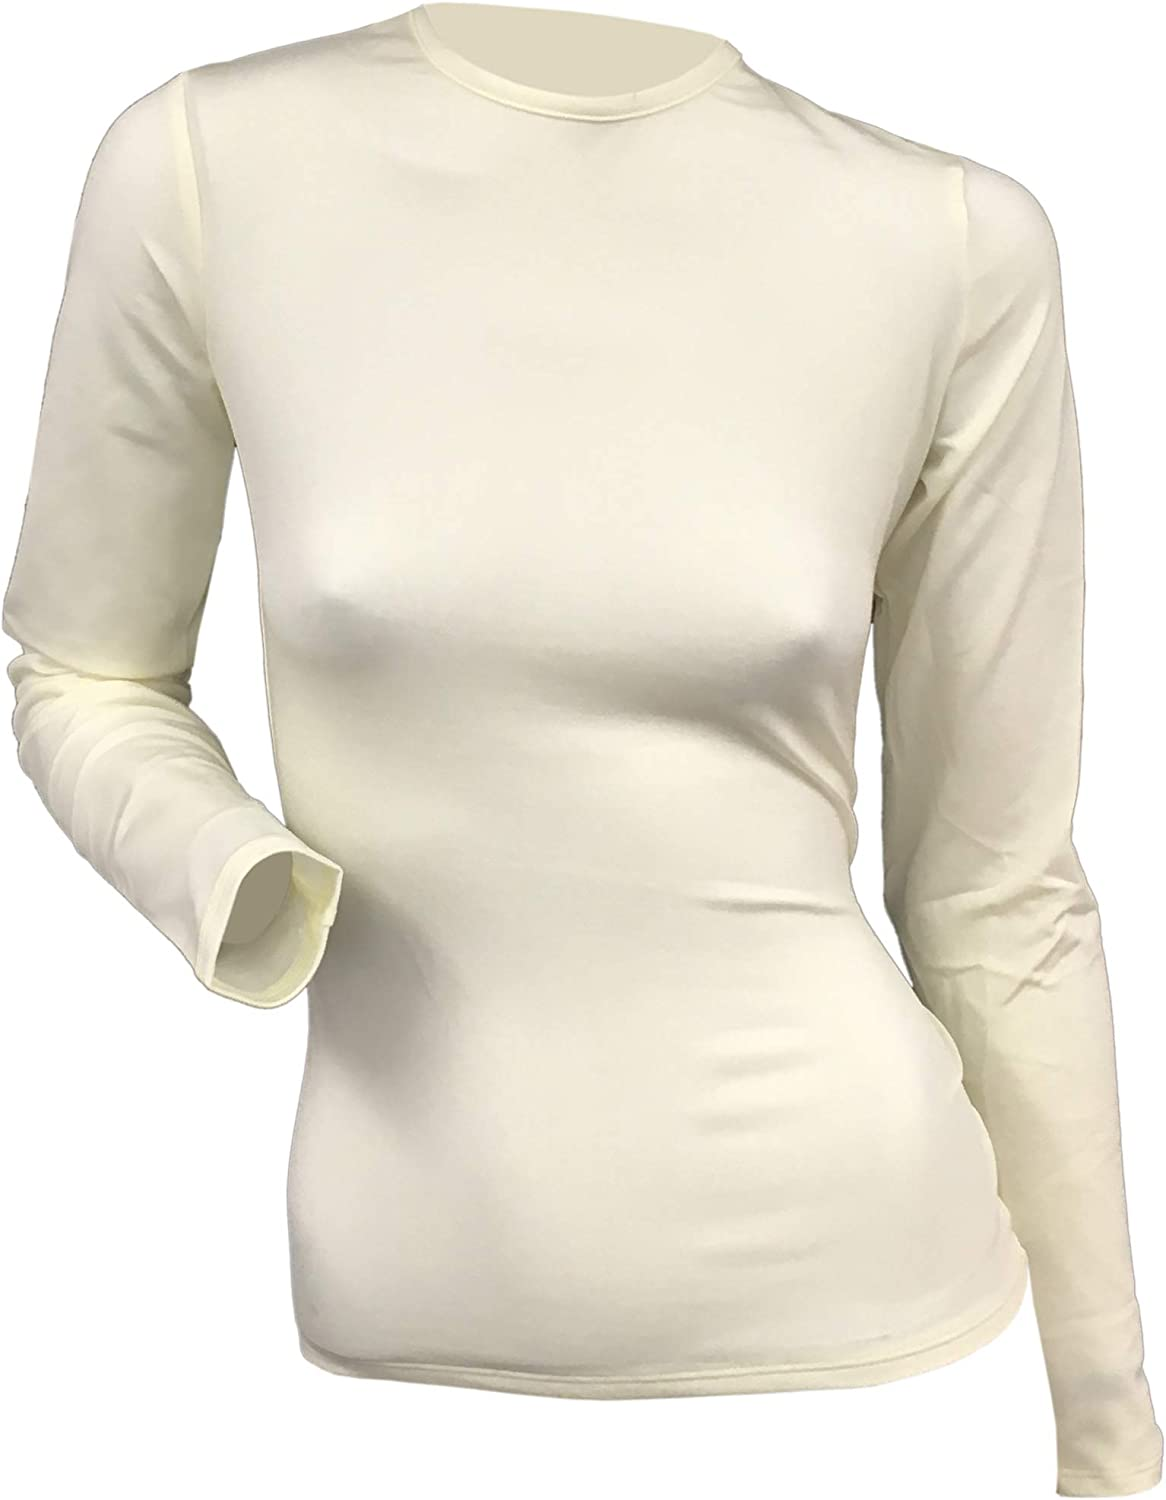 MAXIT Women's Athleisure Haute Body (#604) Basic Thermal Top